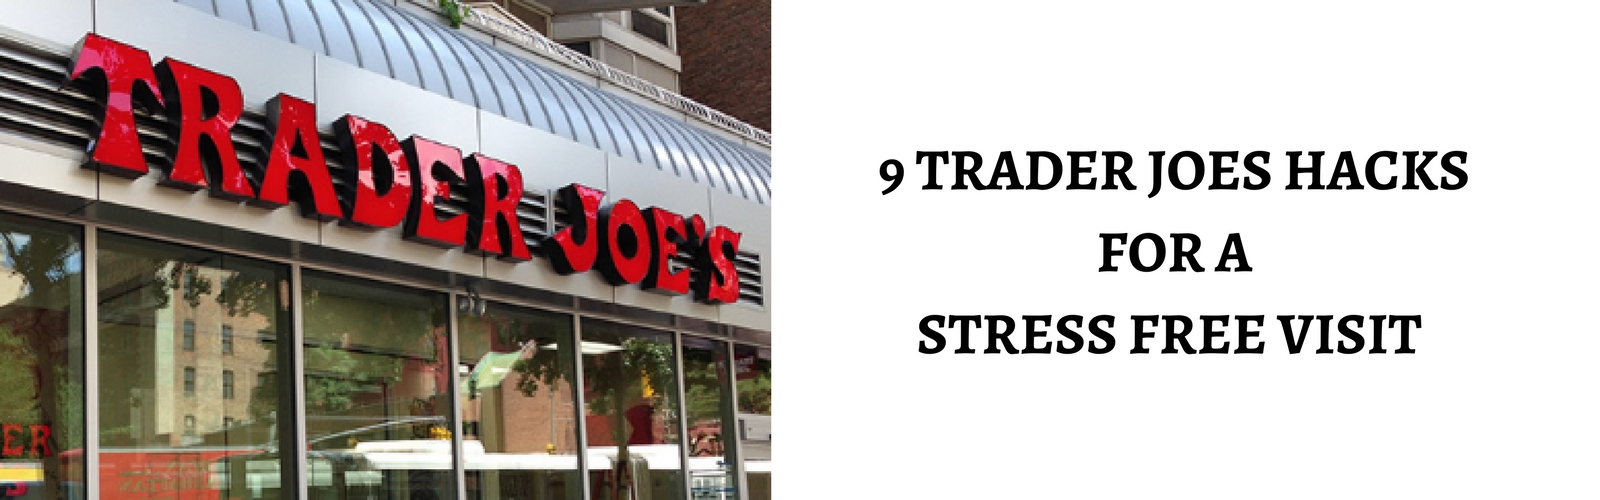 9 trader joes hacks for a stress free visit